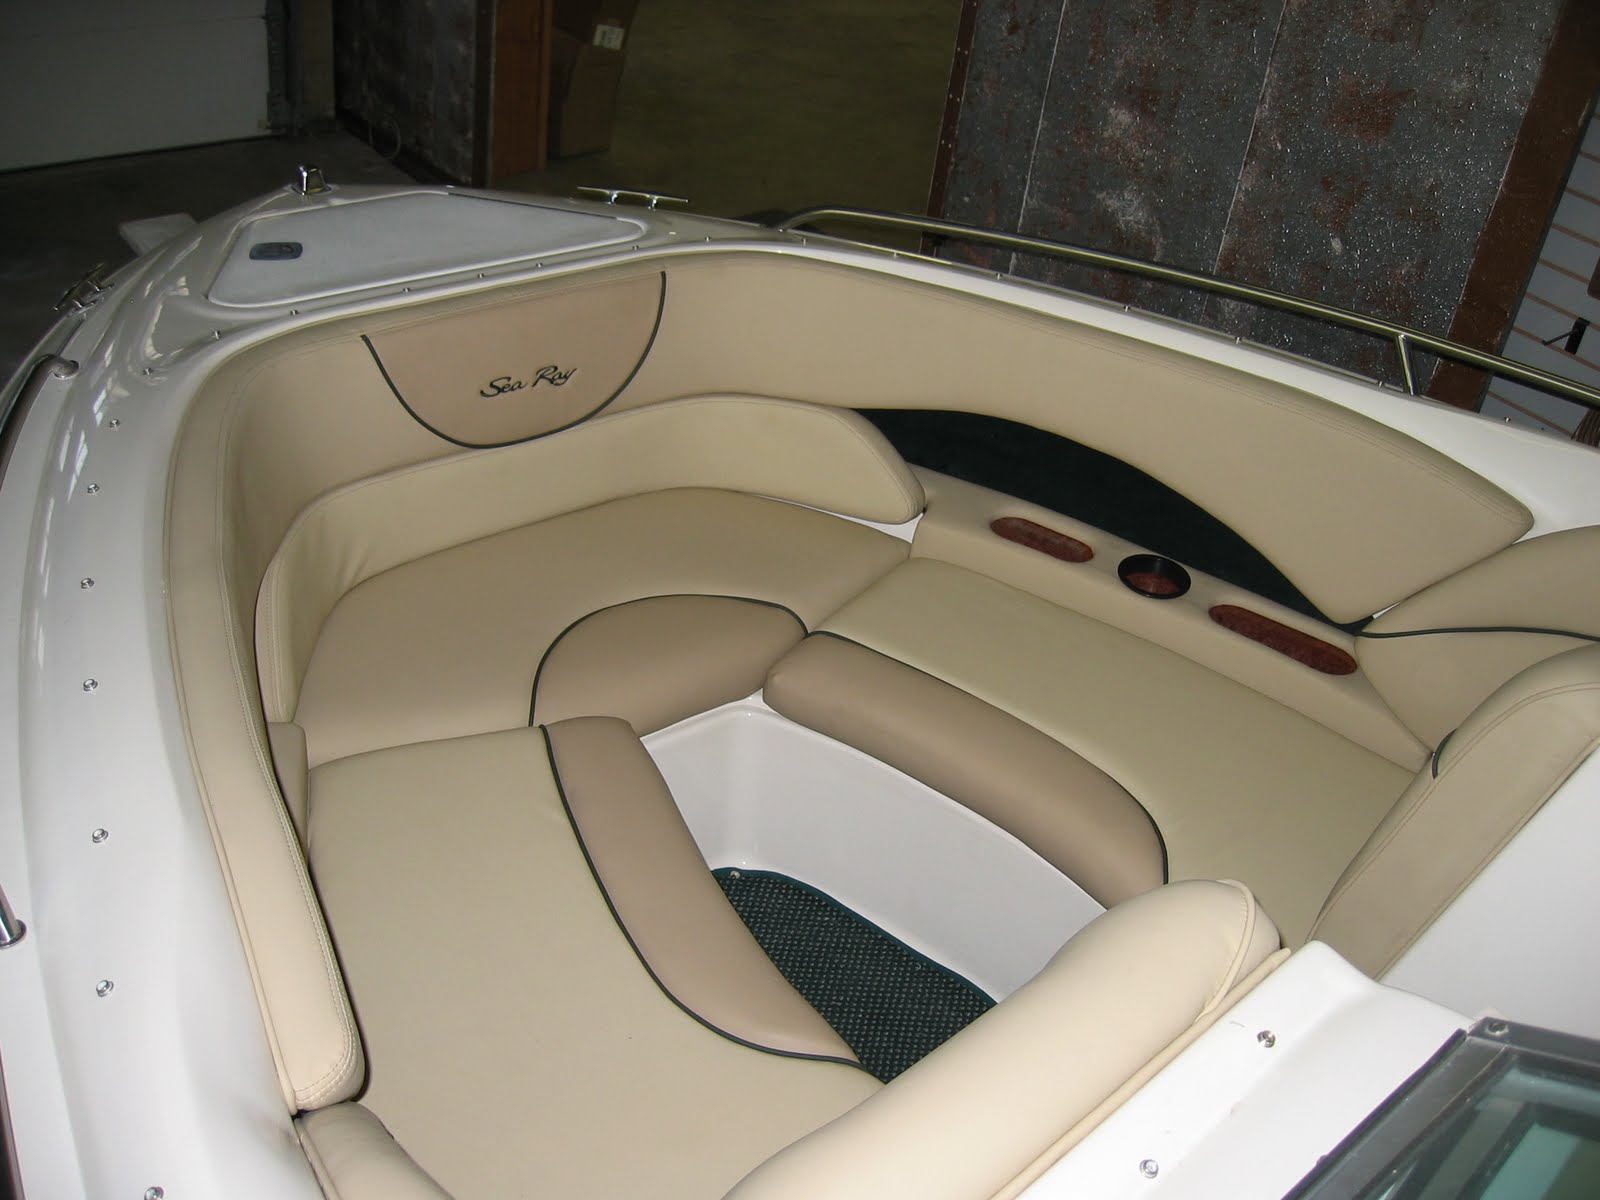 Genial We Recovered This Boat Interior With Three Colors Of Marine Vinyl And Added  Dark Green Embroidery As A Finishing Touch. There Was A Lot Of Rotten Wood  And ...